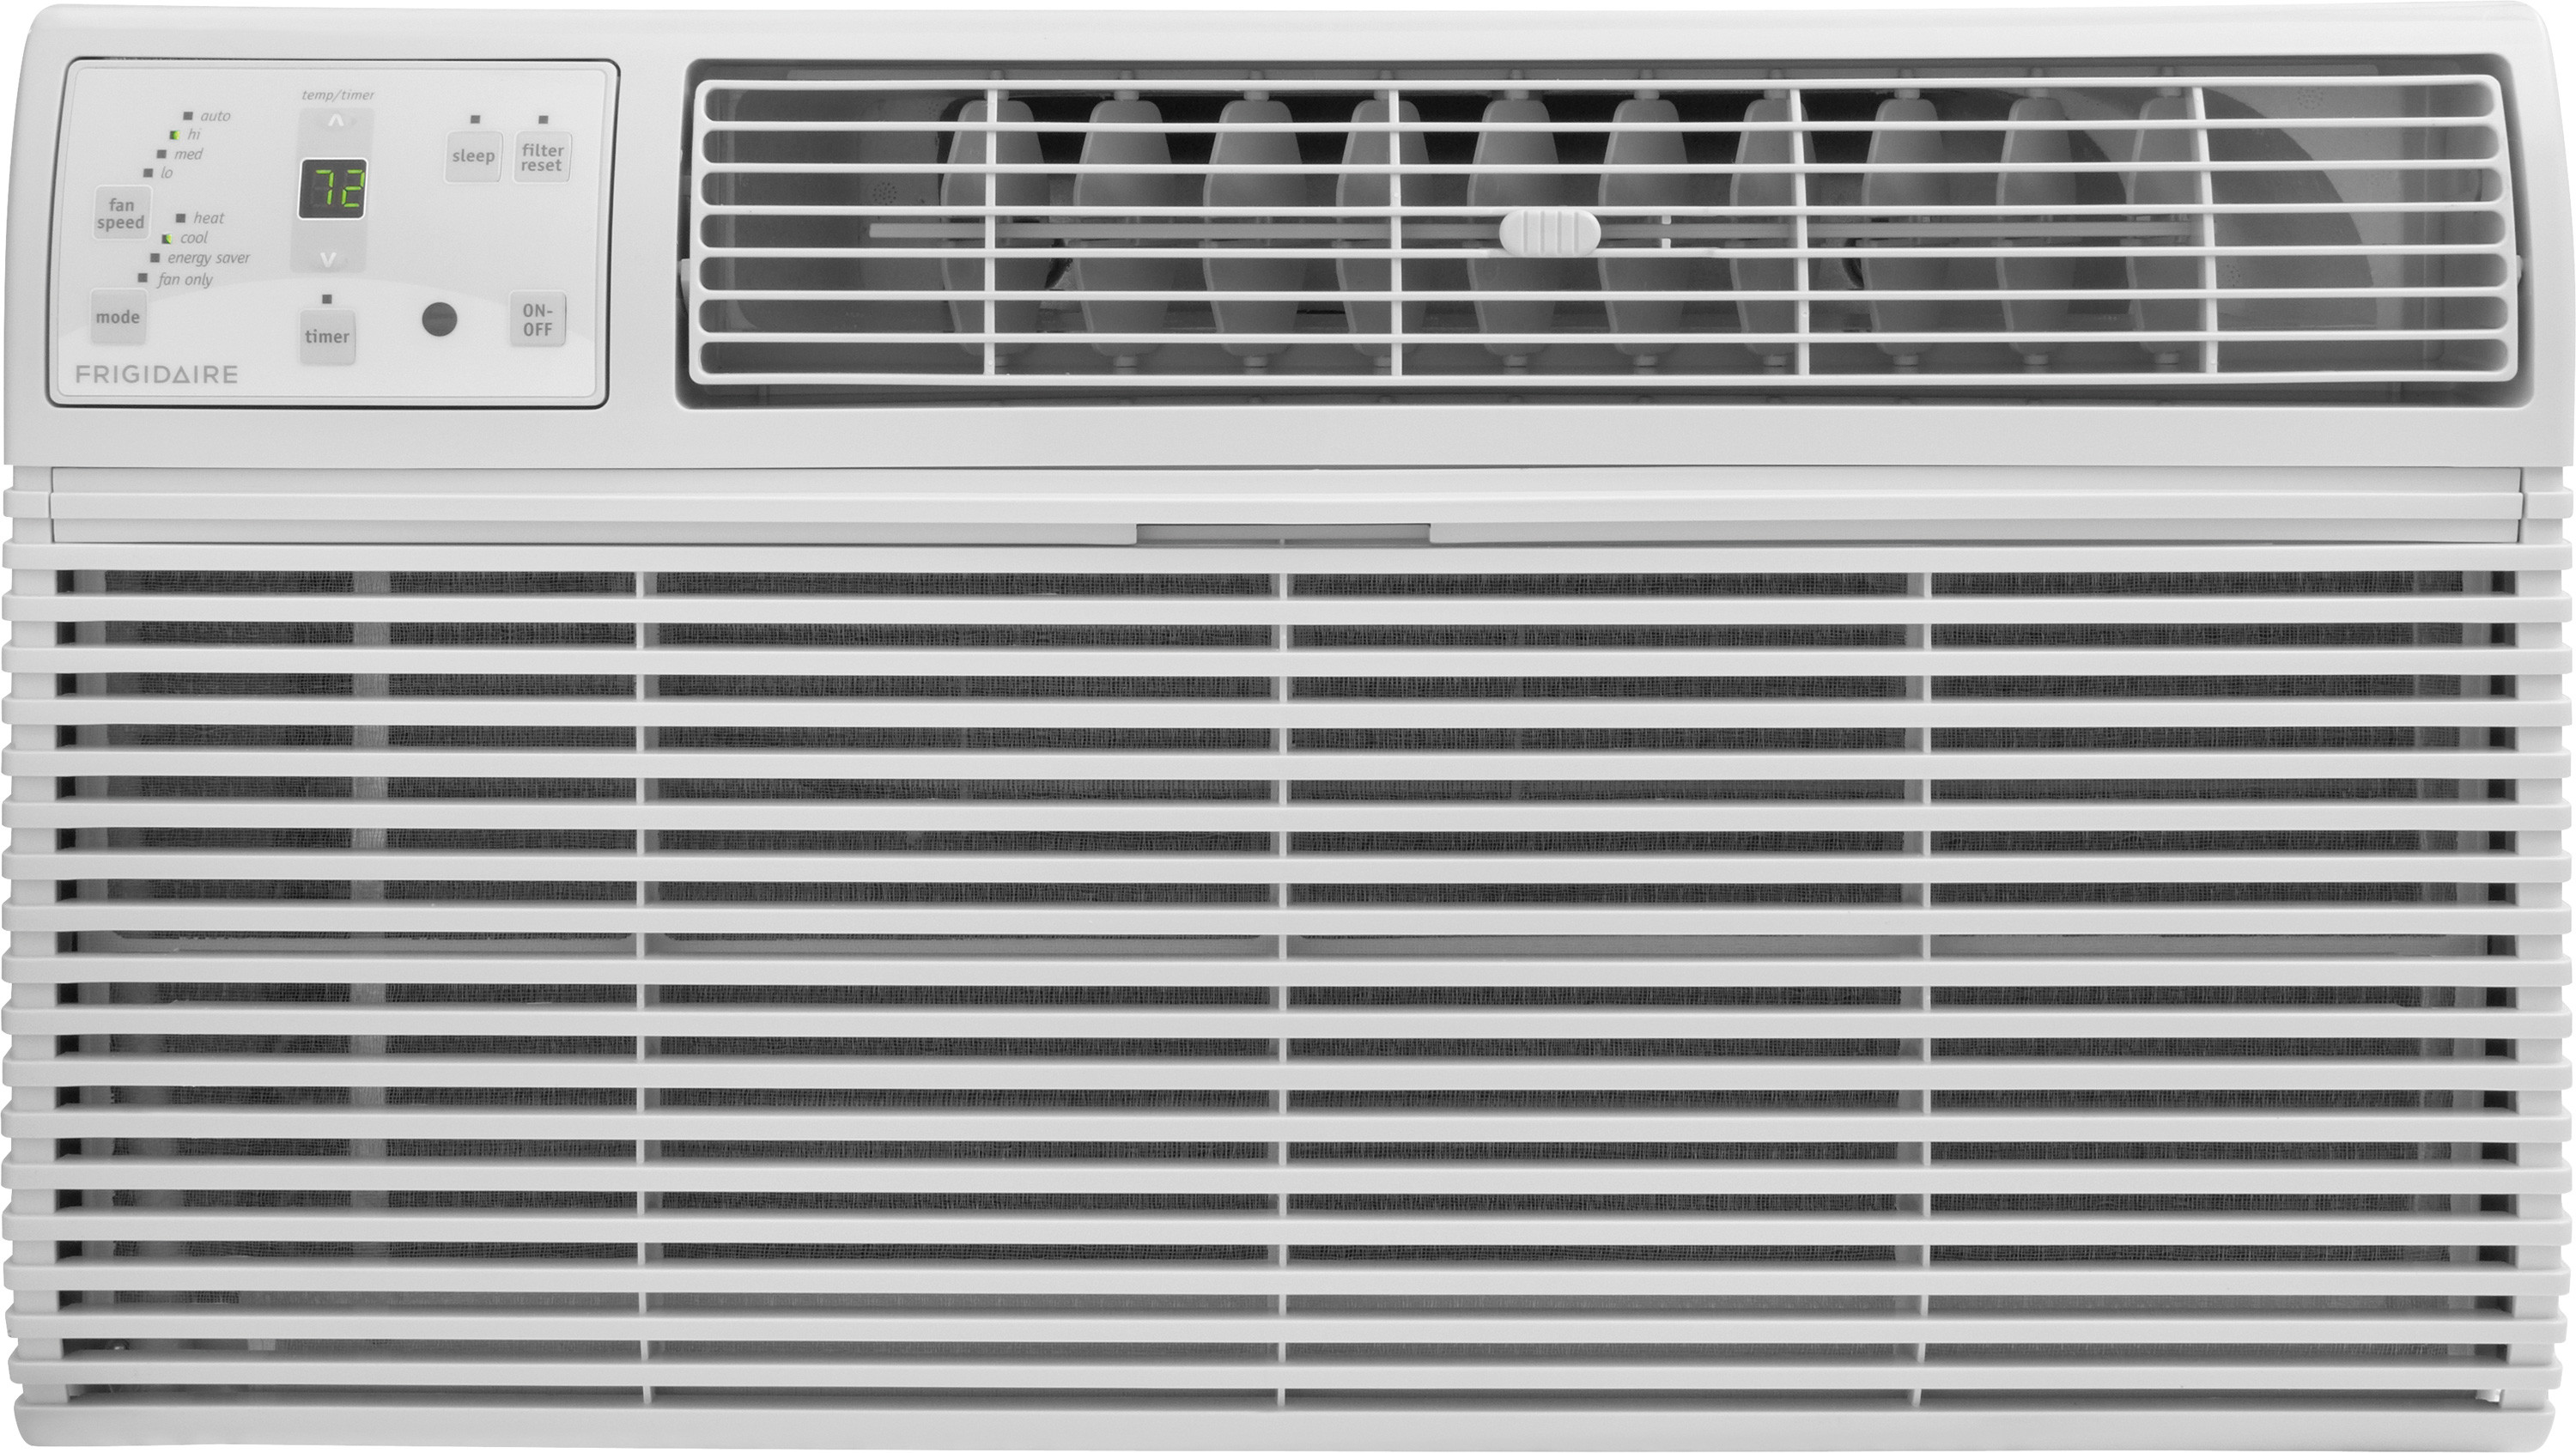 samsung window air conditioner aw08ecb8 owners manual